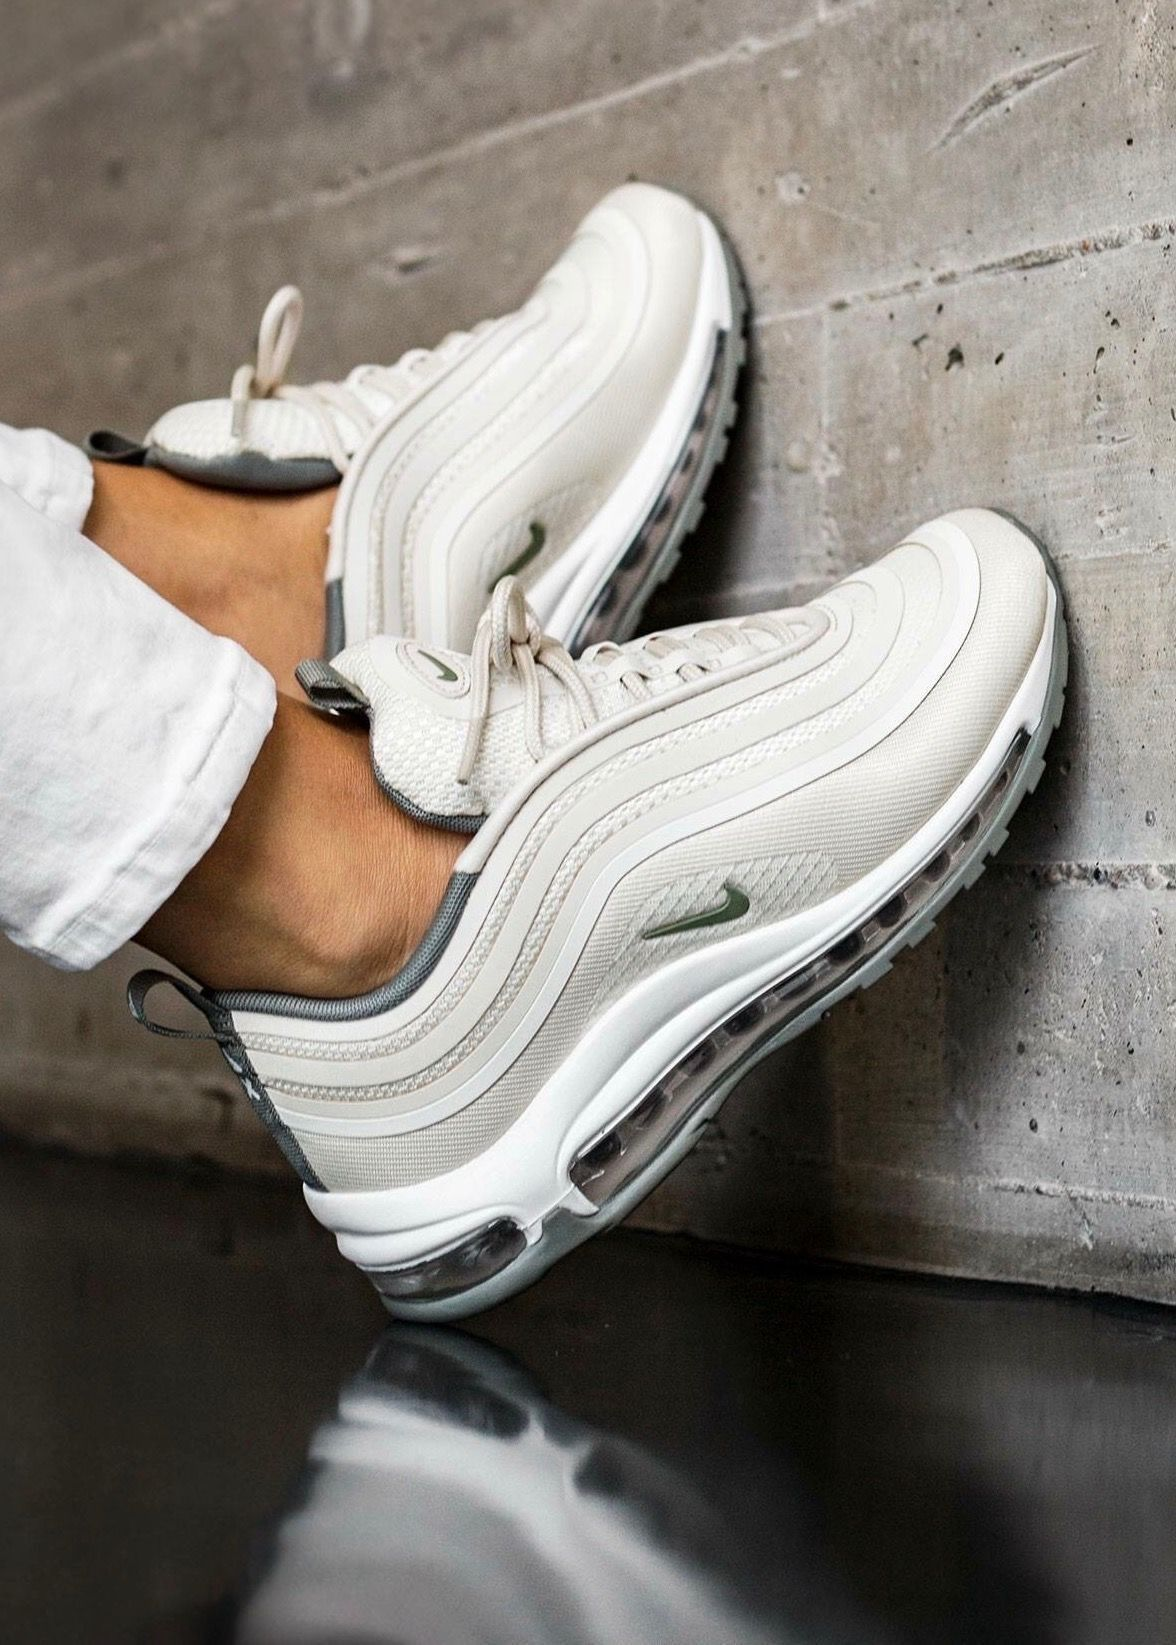 199626ee032 Nike Air Max 97 - Triple White Full Collection Available On Our Site   -   DeltitechBrands.com  -